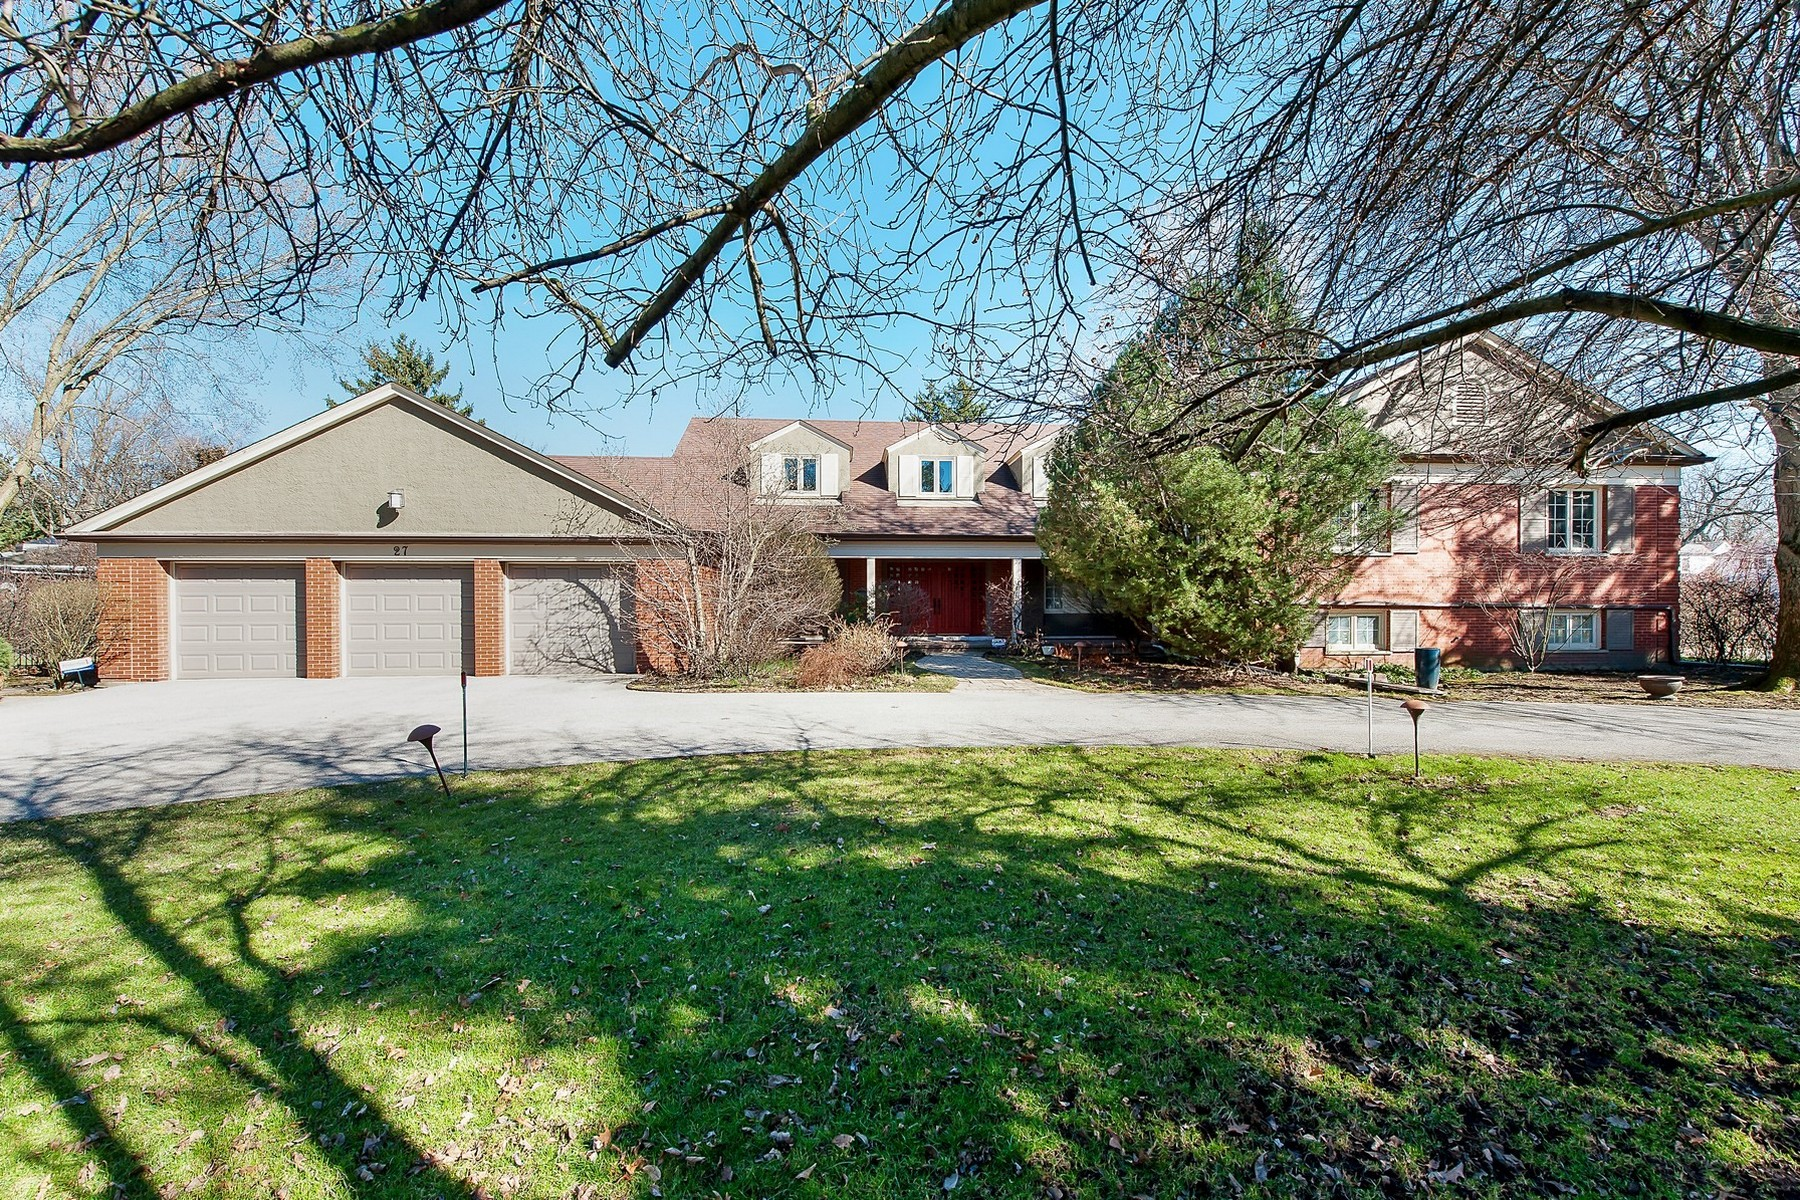 Single Family Home for Sale at Stunning and Spaciousmove in ready home 27 Meadowview Drive Winnetka, Illinois 60093 United States